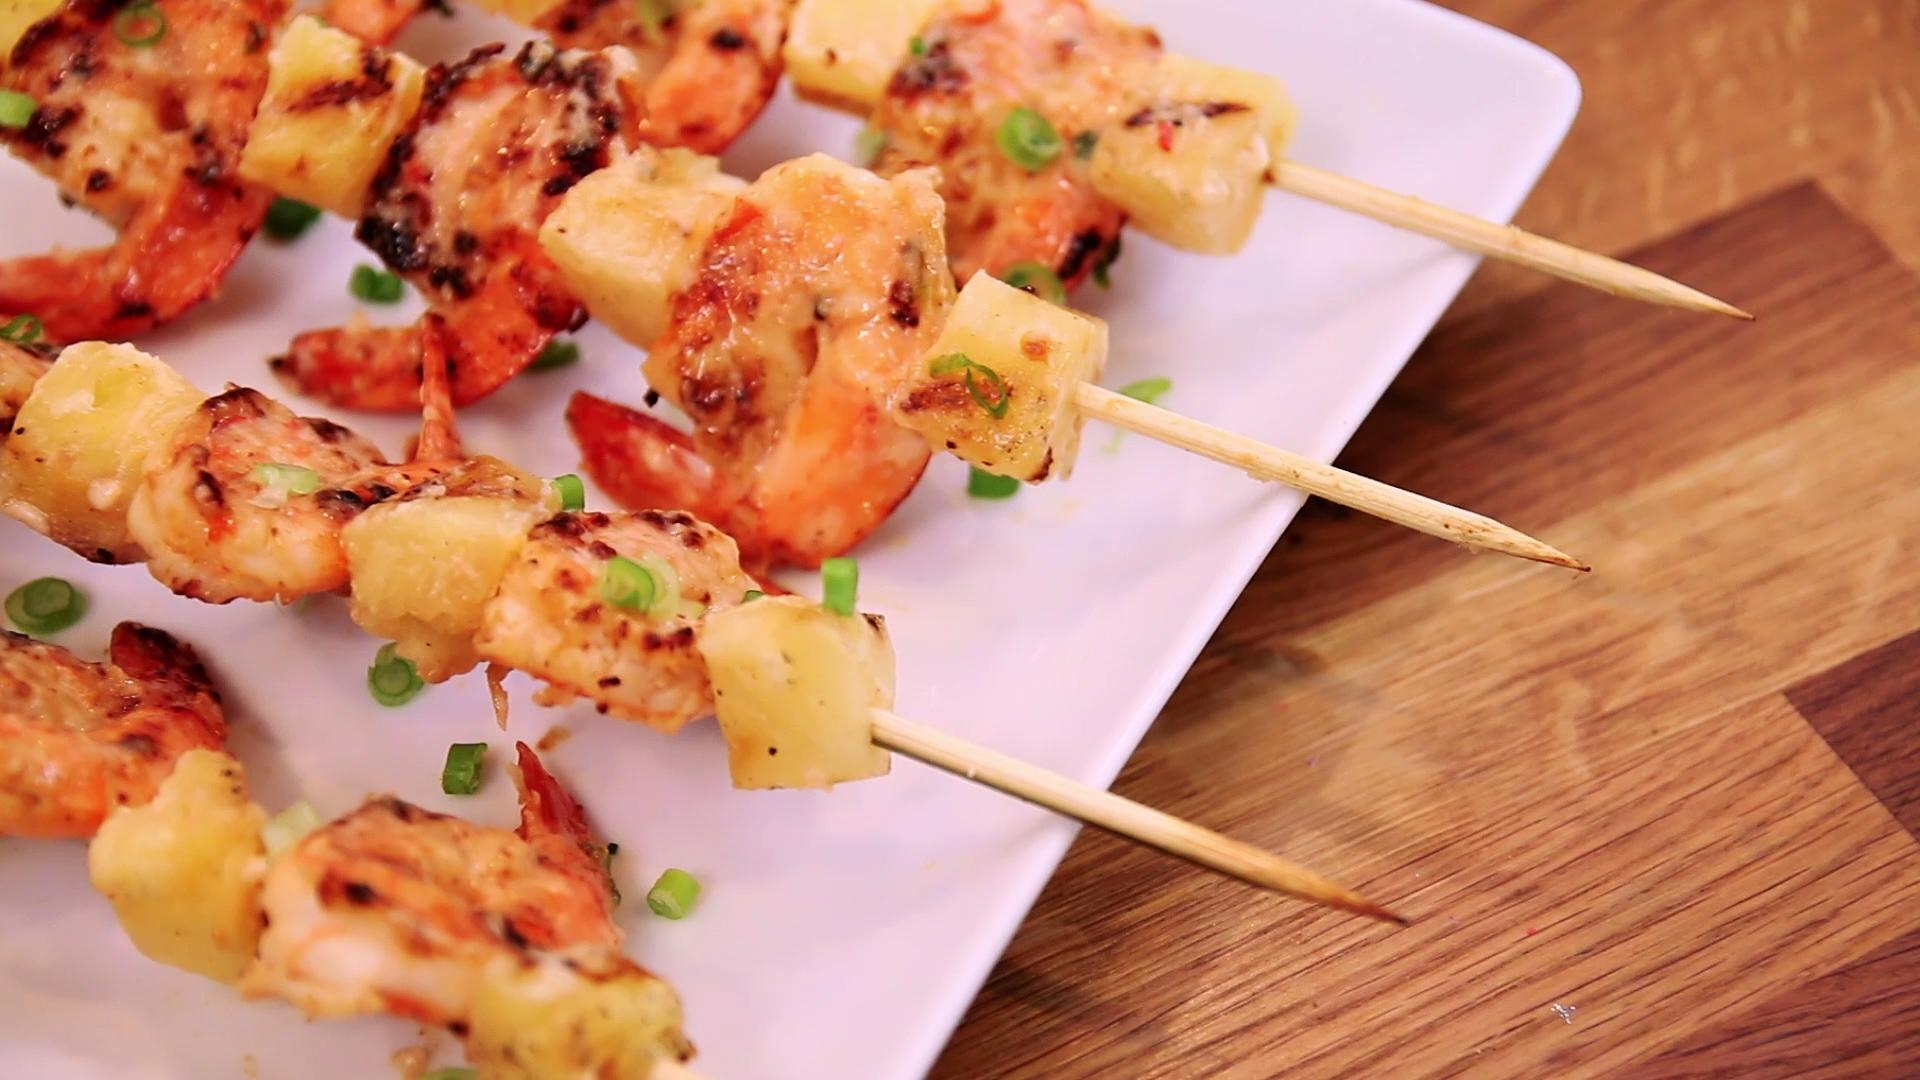 These Piña Colada Shrimp Skewers are Summer on a Stick